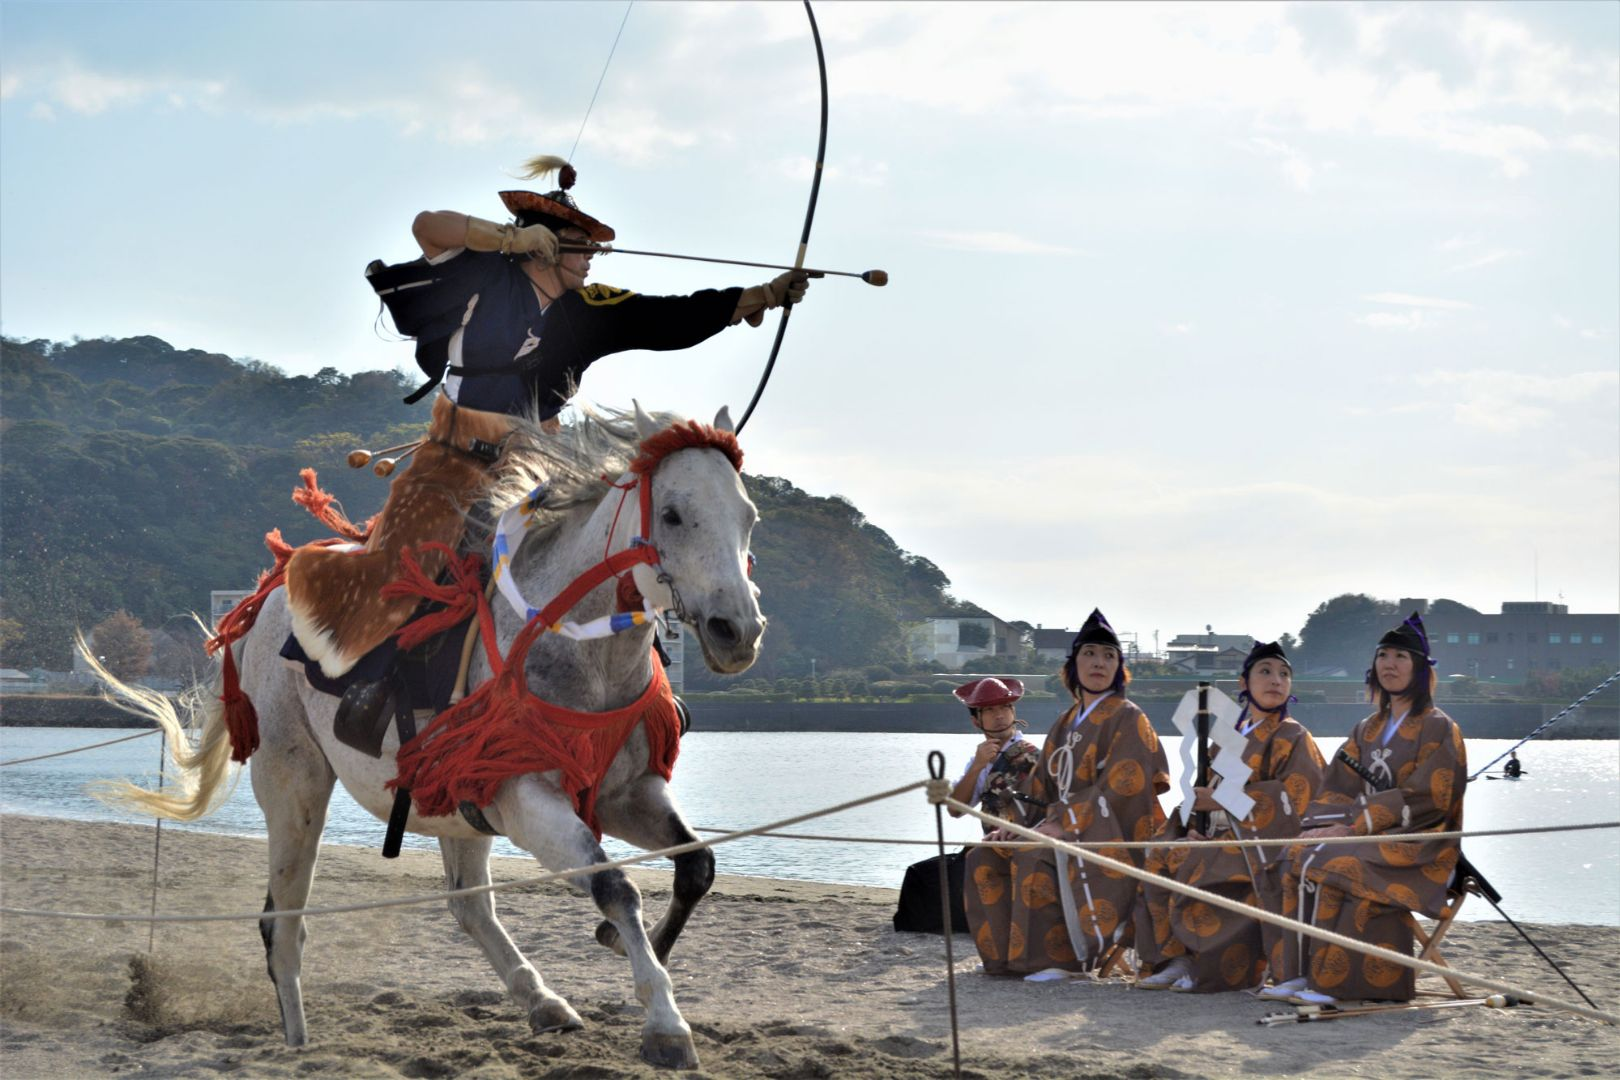 On a beach in Japan, a man sits atop a horse with his bow drawn, aimed at an unseen target. A group of people sit nearby, watching.